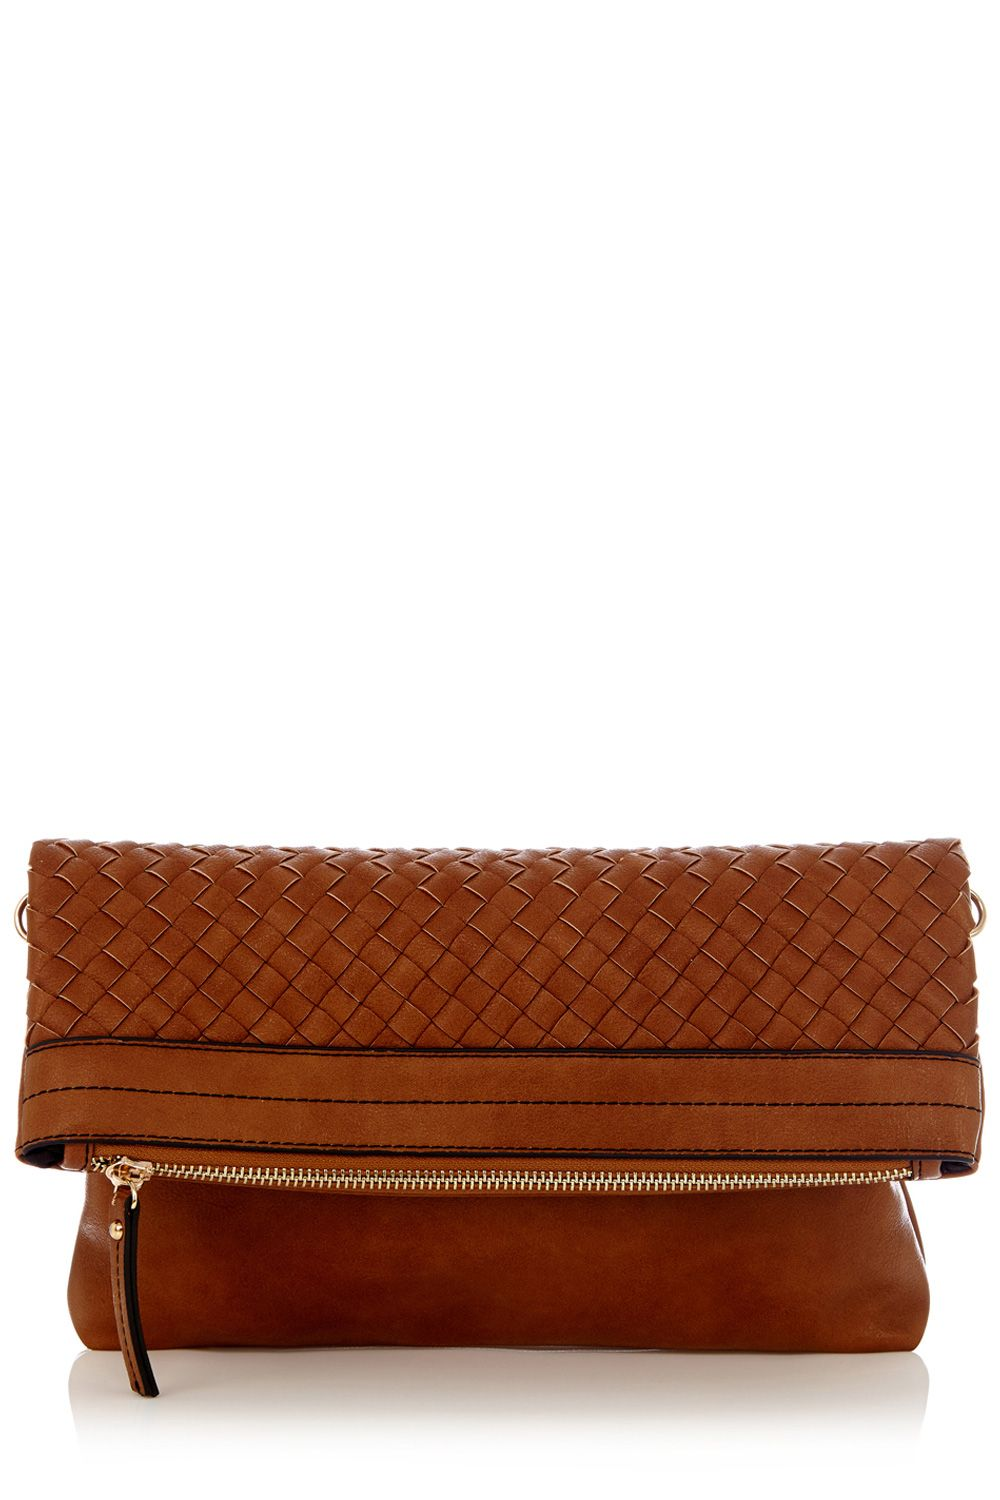 Whitney weave clutch bag